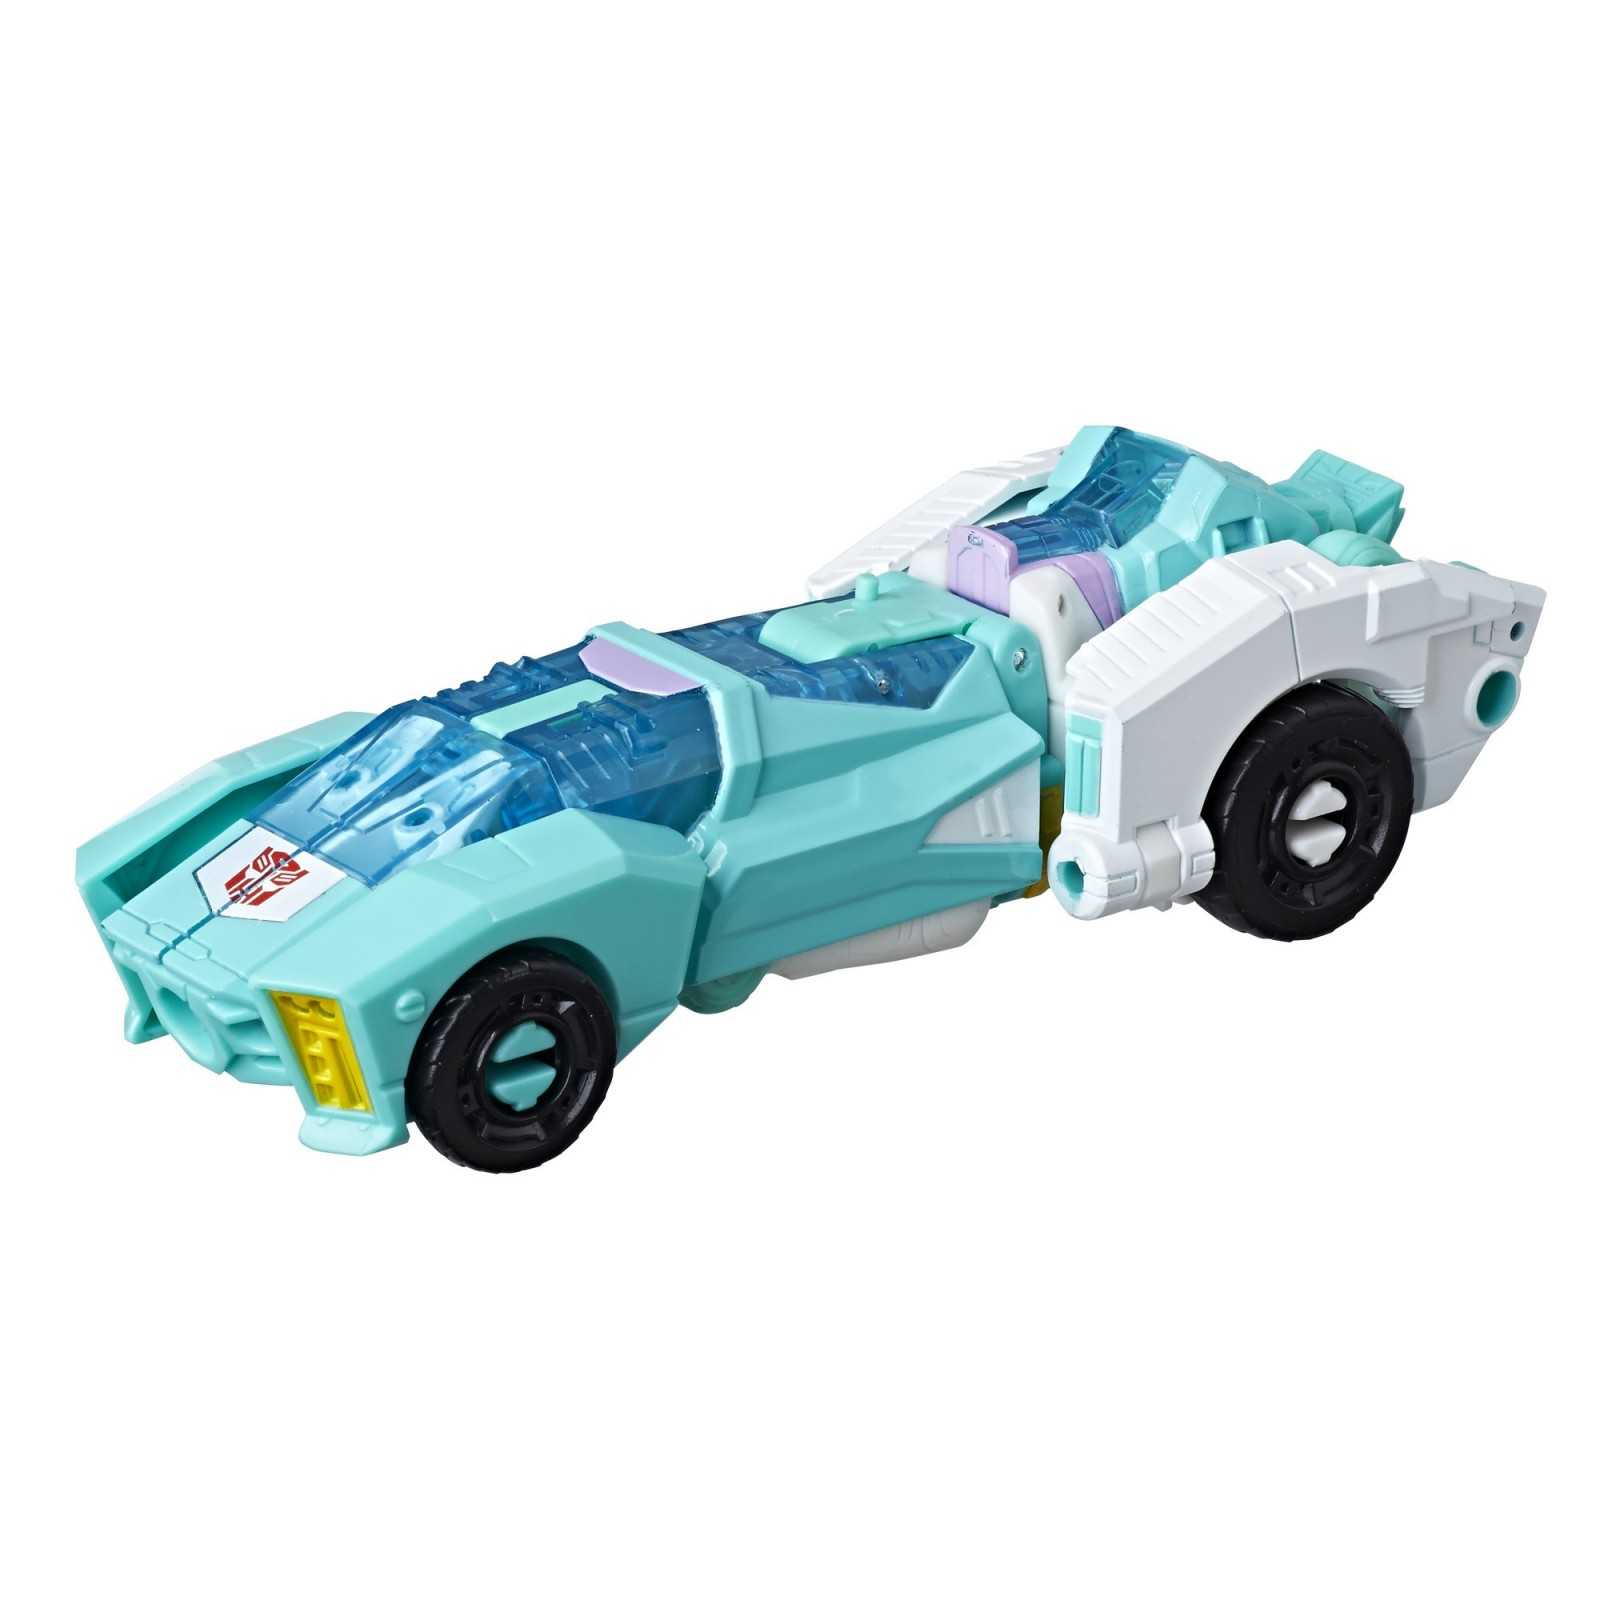 Transformers News: Stock Images of Finished Product for Transformers Power of the Primes Deluxe Moonracer